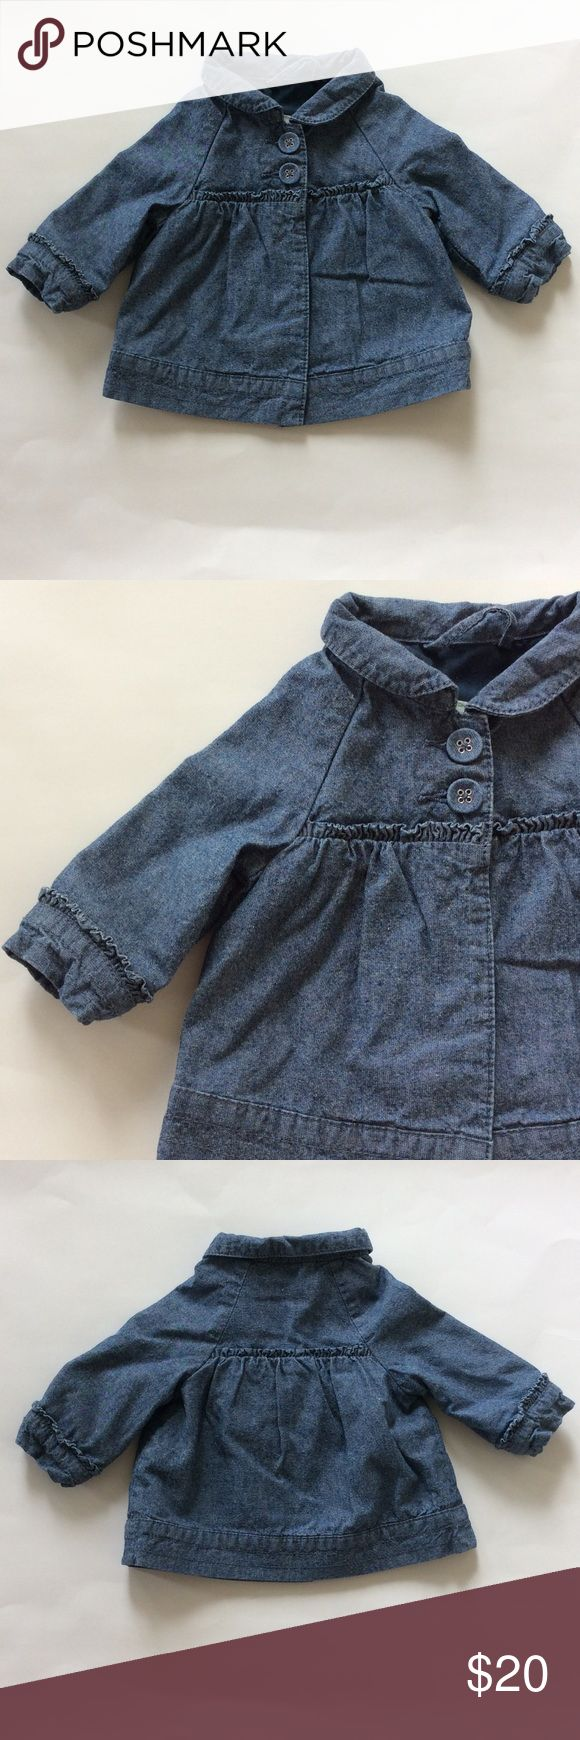 Benetton Baby jacket Benetton Baby jacket. Super cute for your little one Blue with gorgeous detailing. 2 buttons in front. Long sleeves. Lined. 100% cotton. Size 1-3 mths. Excellent condition. Benetton Baby Jackets & Coats